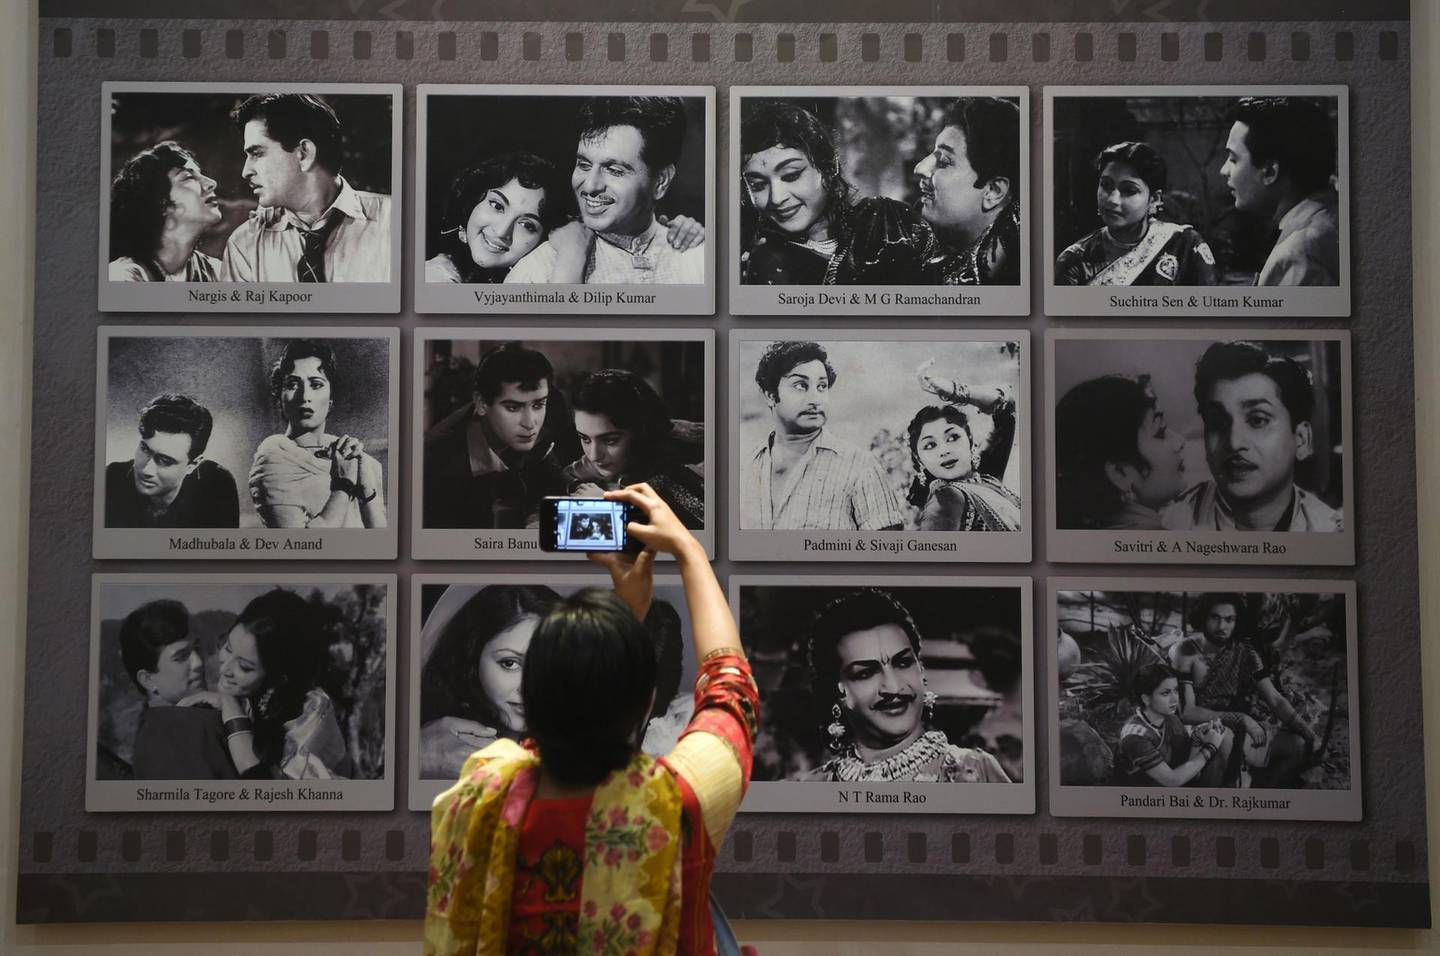 In this picture taken on January 22, 2019, a visitor takes a picture of a display with images of former Indian movie actors at the National Museum of Indian Cinema (NMIC), the country's first museum showcasing the history of its film industry, in Mumbai. From silent black-and-white films to colourful blockbusters bursting with song and dance, a new museum tracing the evolution of Indian cinema has opened in the home of Bollywood. Costing 1.4 billion rupees (19.6 million USD), India's first national film museum is spread across a stylish 19th-century bungalow and a modern five-storey glass structure in south Mumbai.  - TO GO WITH AFP STORY INDIA-ENTERTAINMENT-FILM-BOLLYWOOD-HISTORY-MUSEUM,FOCUS BY UDITA JHUNJHUNWALA AND PETER HUTCHISON  / AFP / PUNIT PARANJPE / TO GO WITH AFP STORY INDIA-ENTERTAINMENT-FILM-BOLLYWOOD-HISTORY-MUSEUM,FOCUS BY UDITA JHUNJHUNWALA AND PETER HUTCHISON